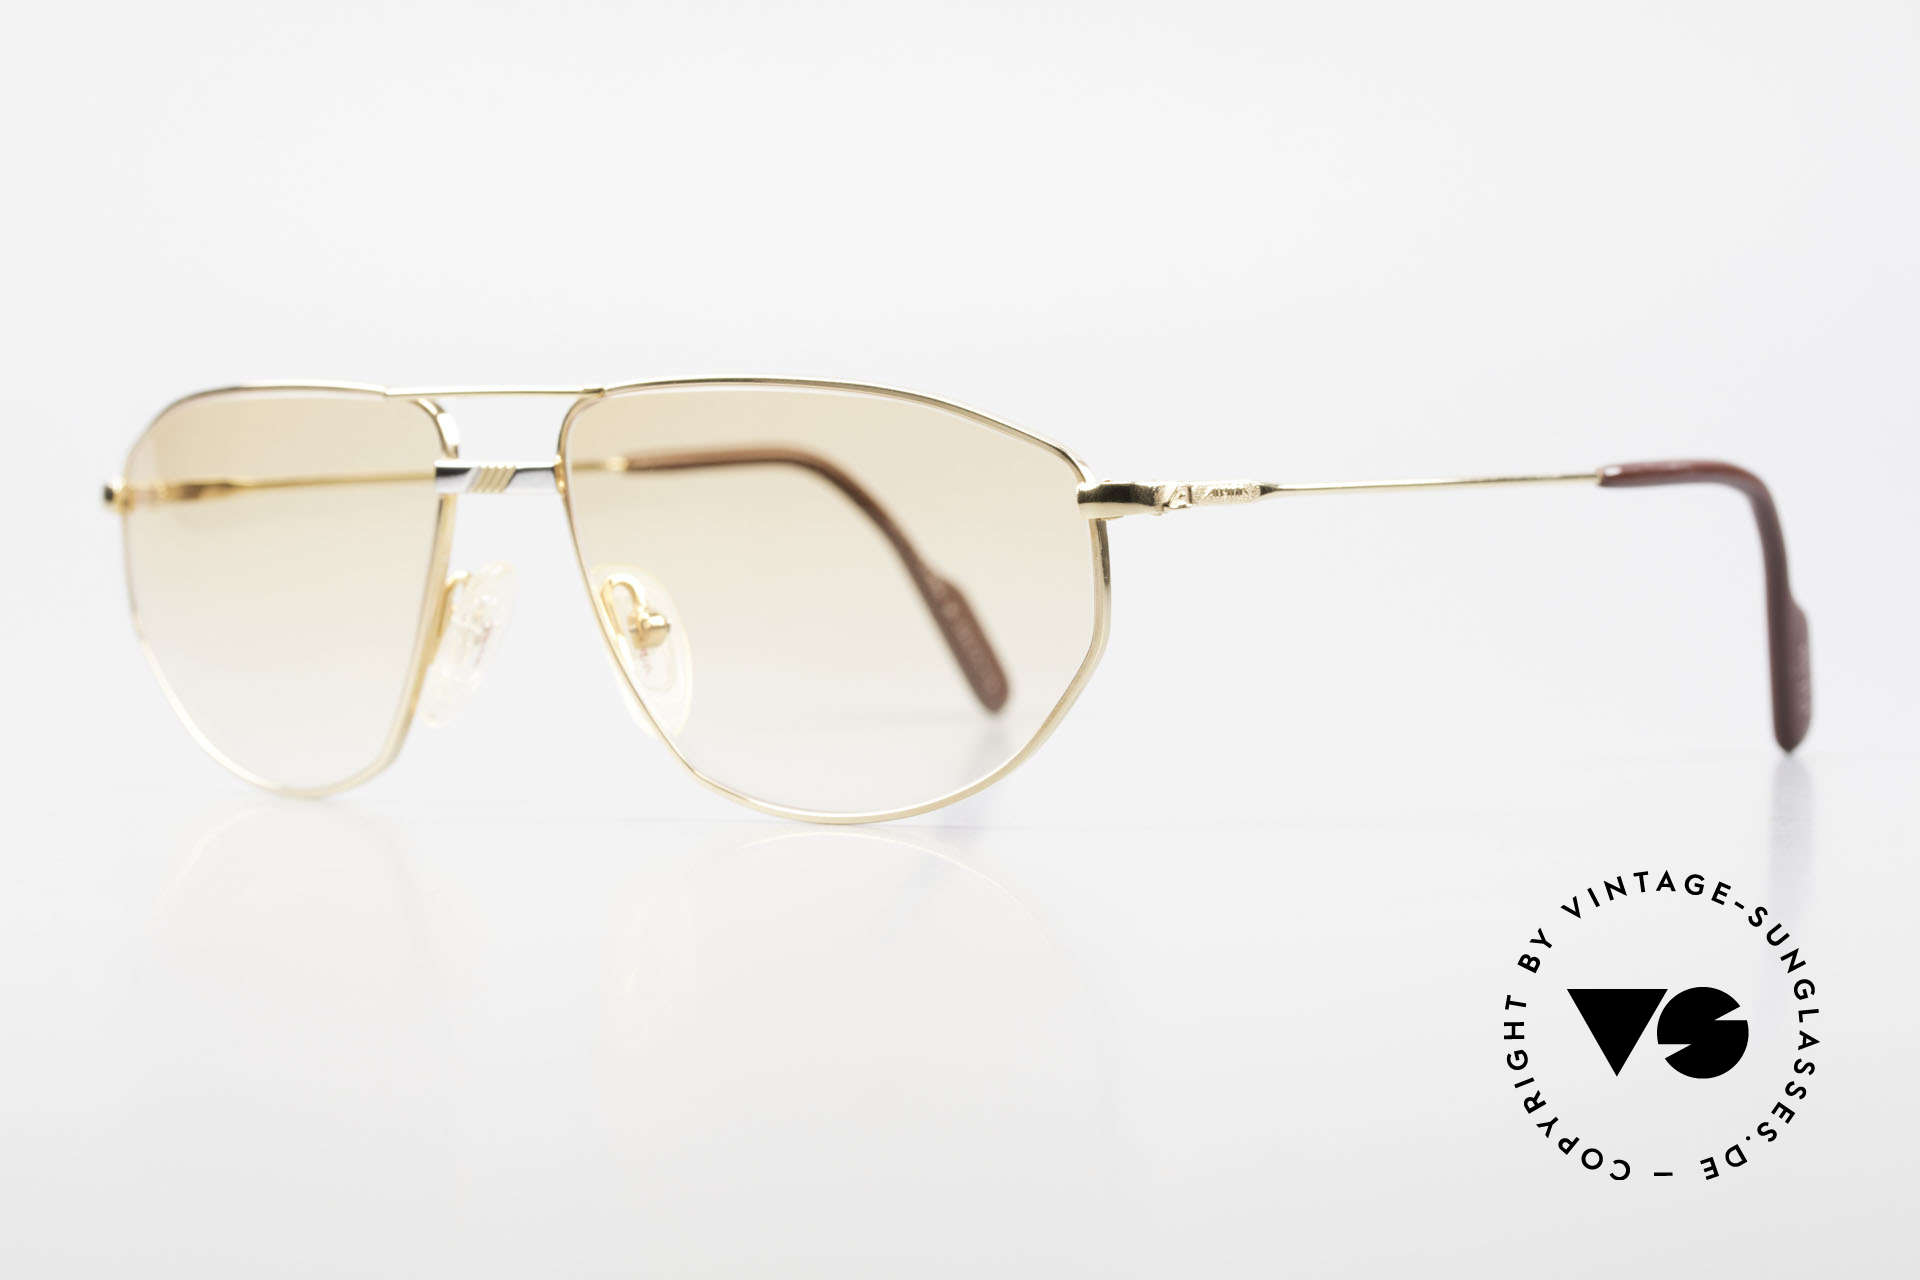 Alpina FM41 Stylish Vintage 80's Sunglasses, gold-plated metal frame with a silver-plated bridge, Made for Men and Women